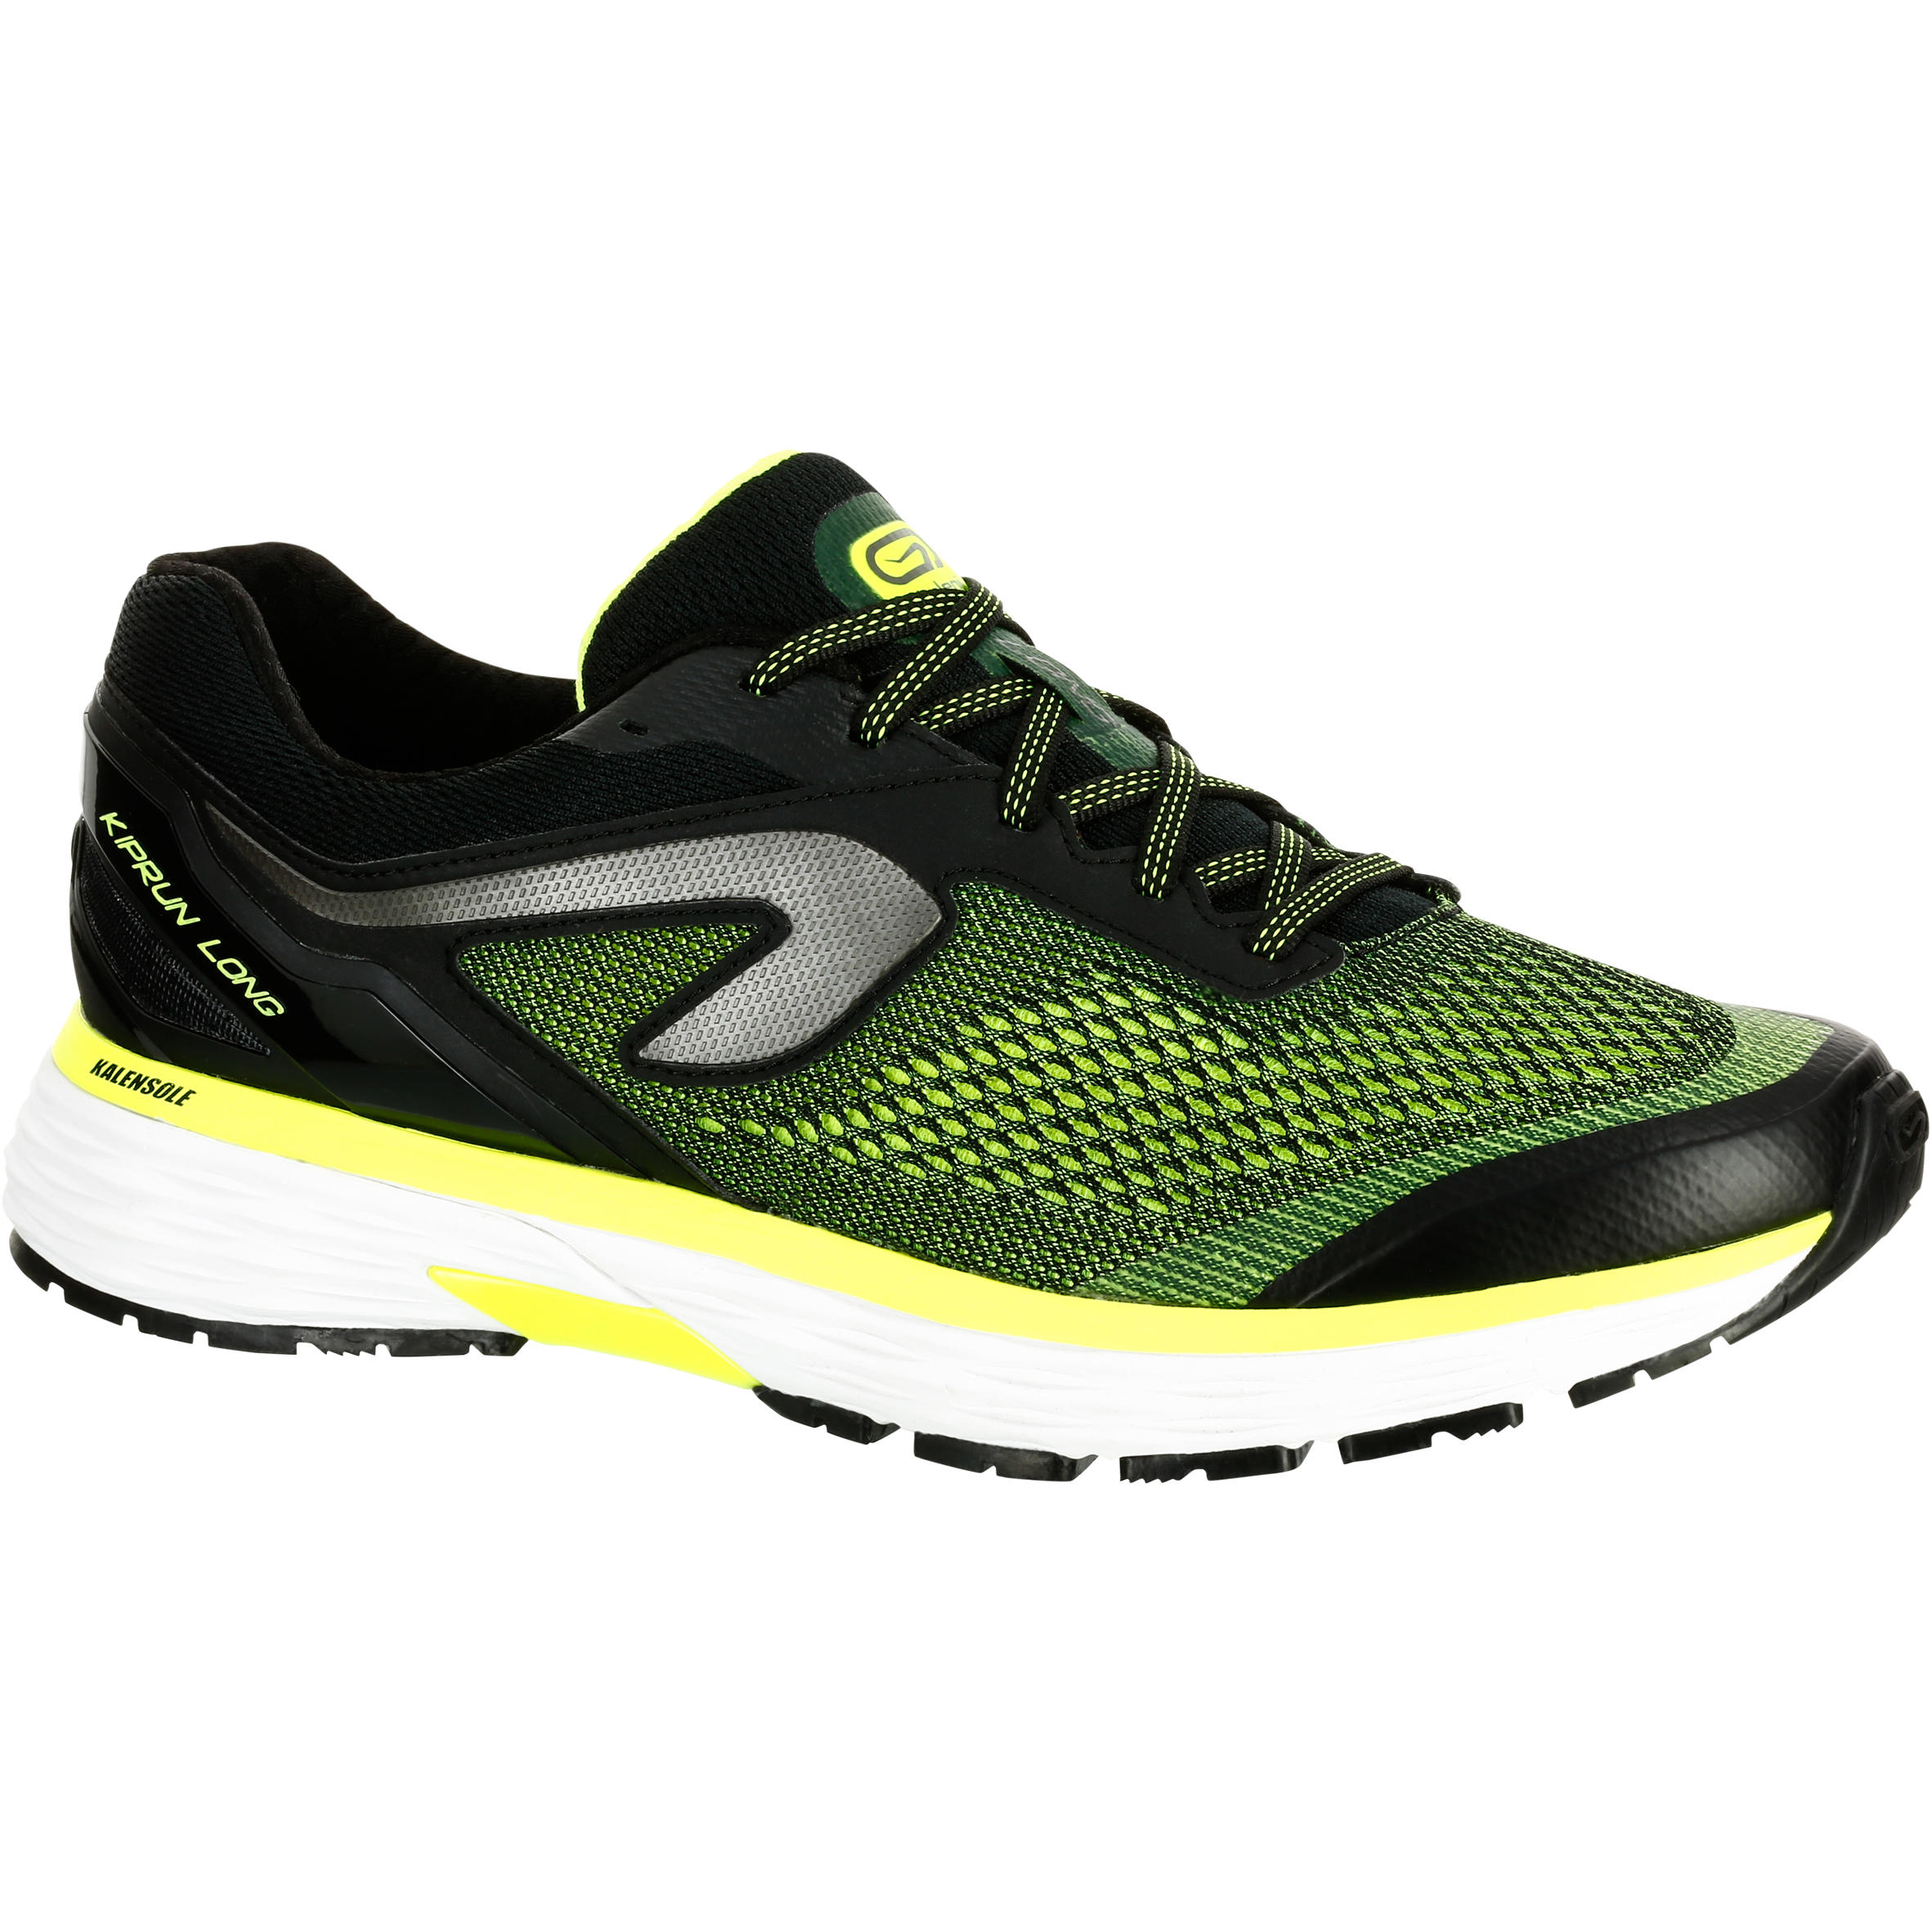 Decathlon Sports India | Buy Sports Products Online